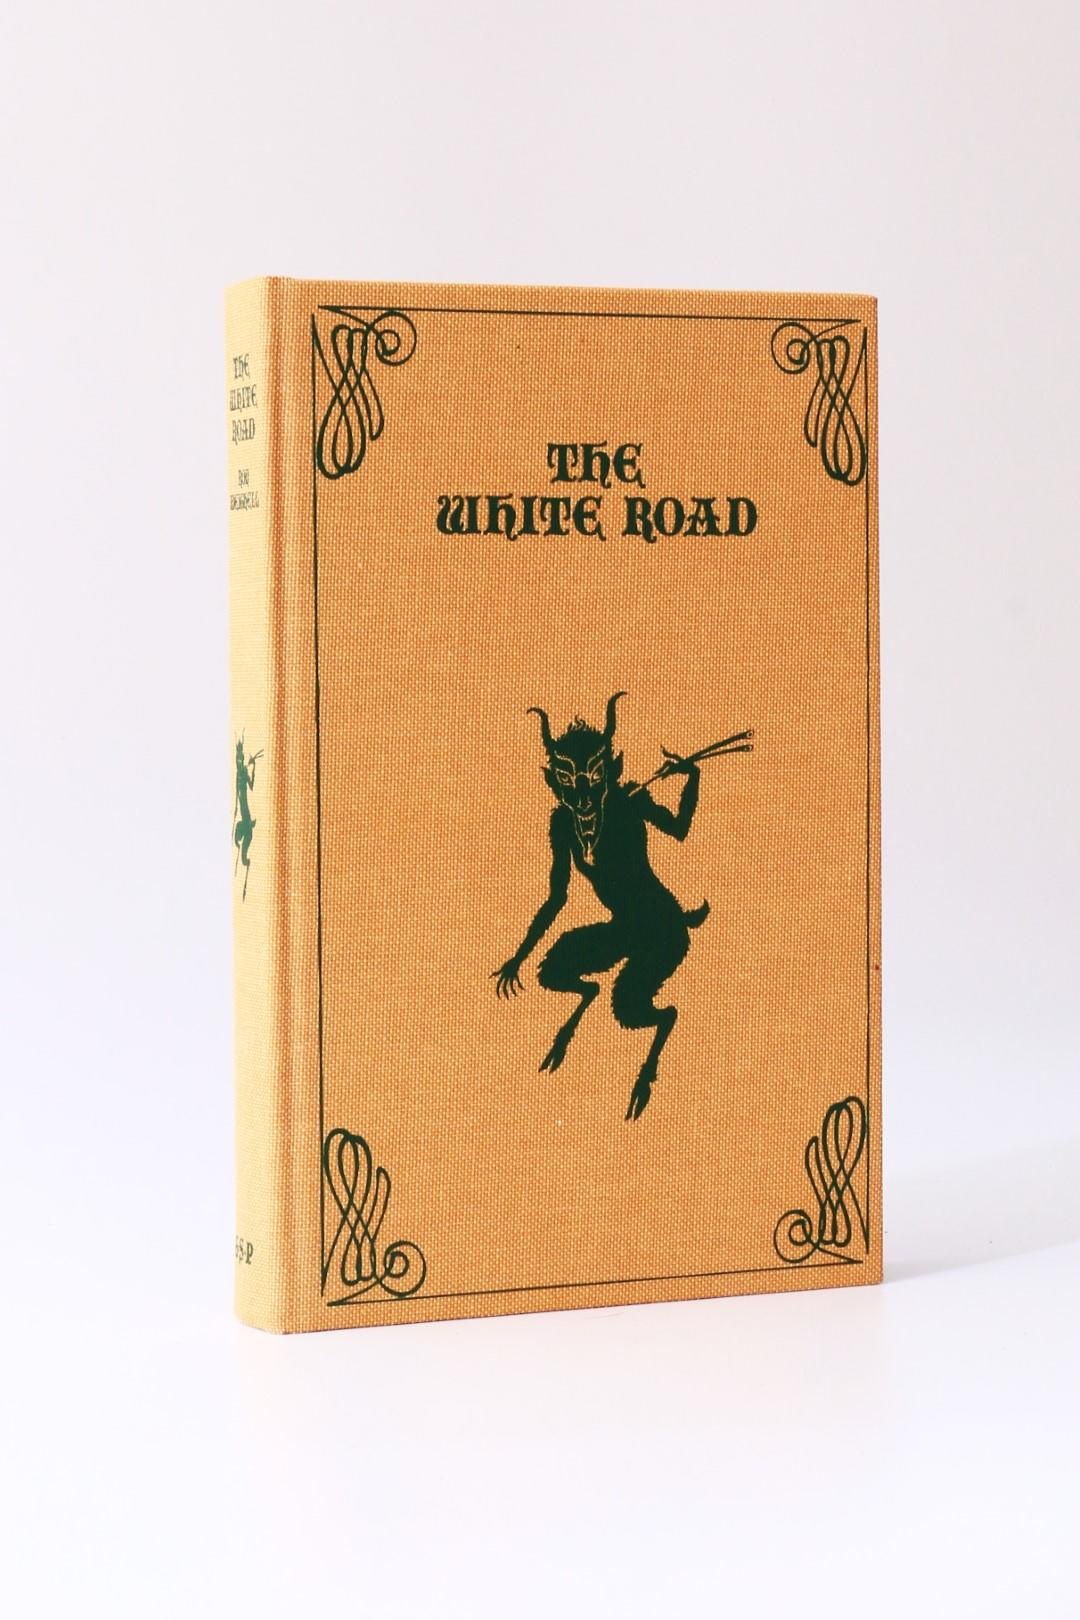 Ron Weighell - The White Road - Ghost Story Press, 1997, Signed Limited Edition.